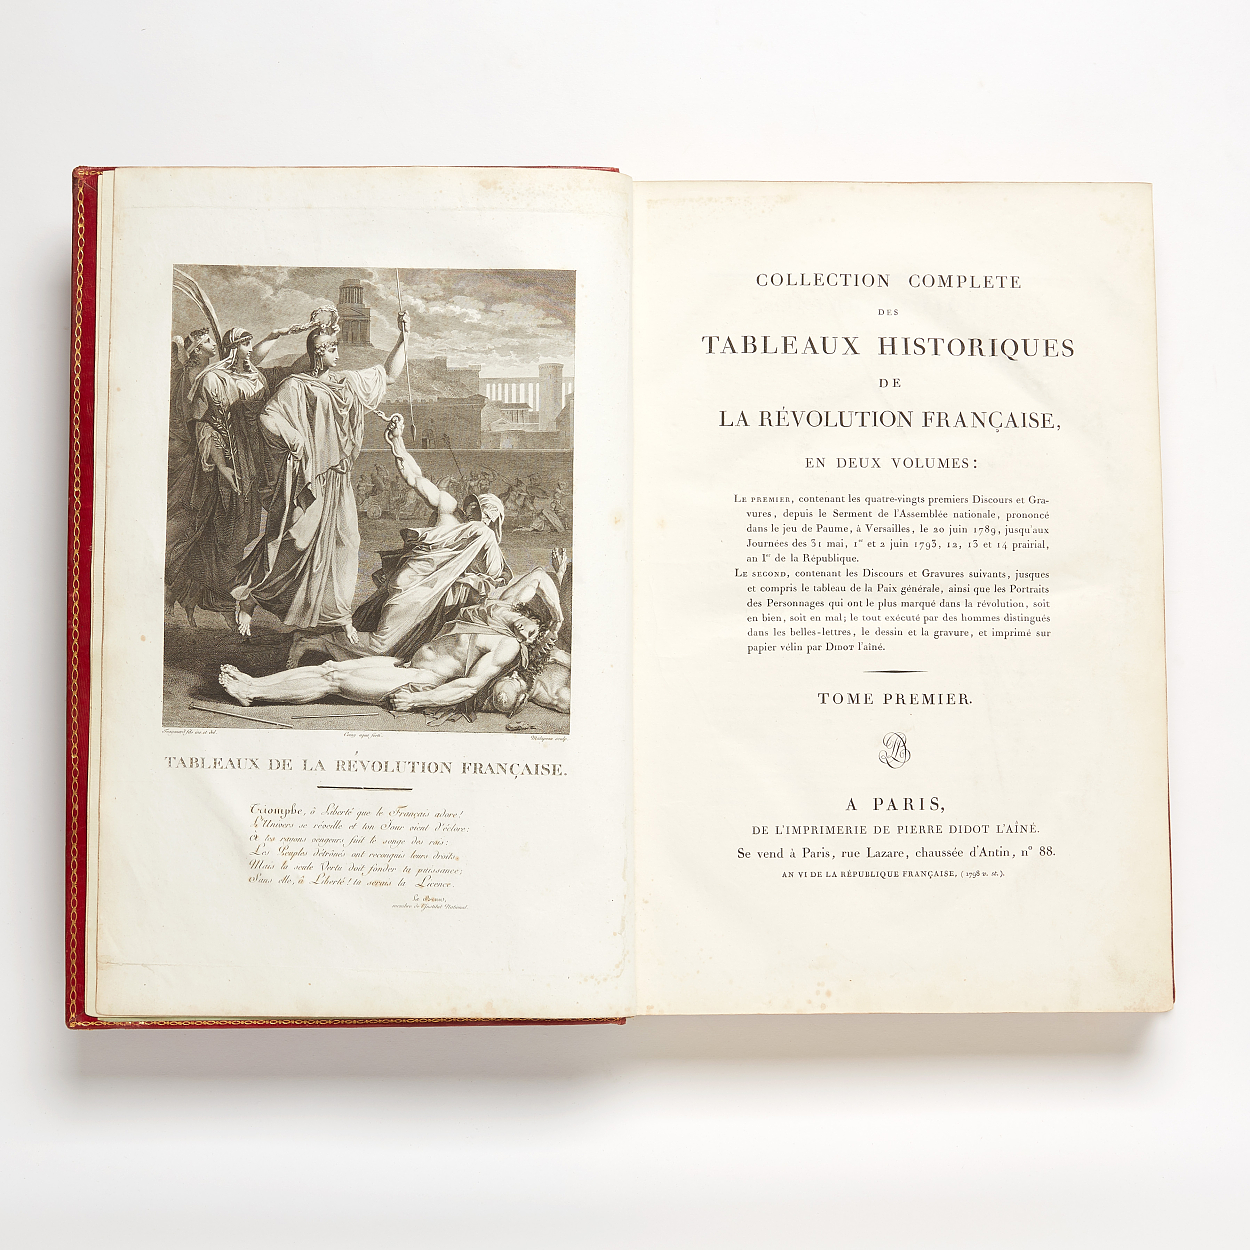 On the French revolution by Fauchet